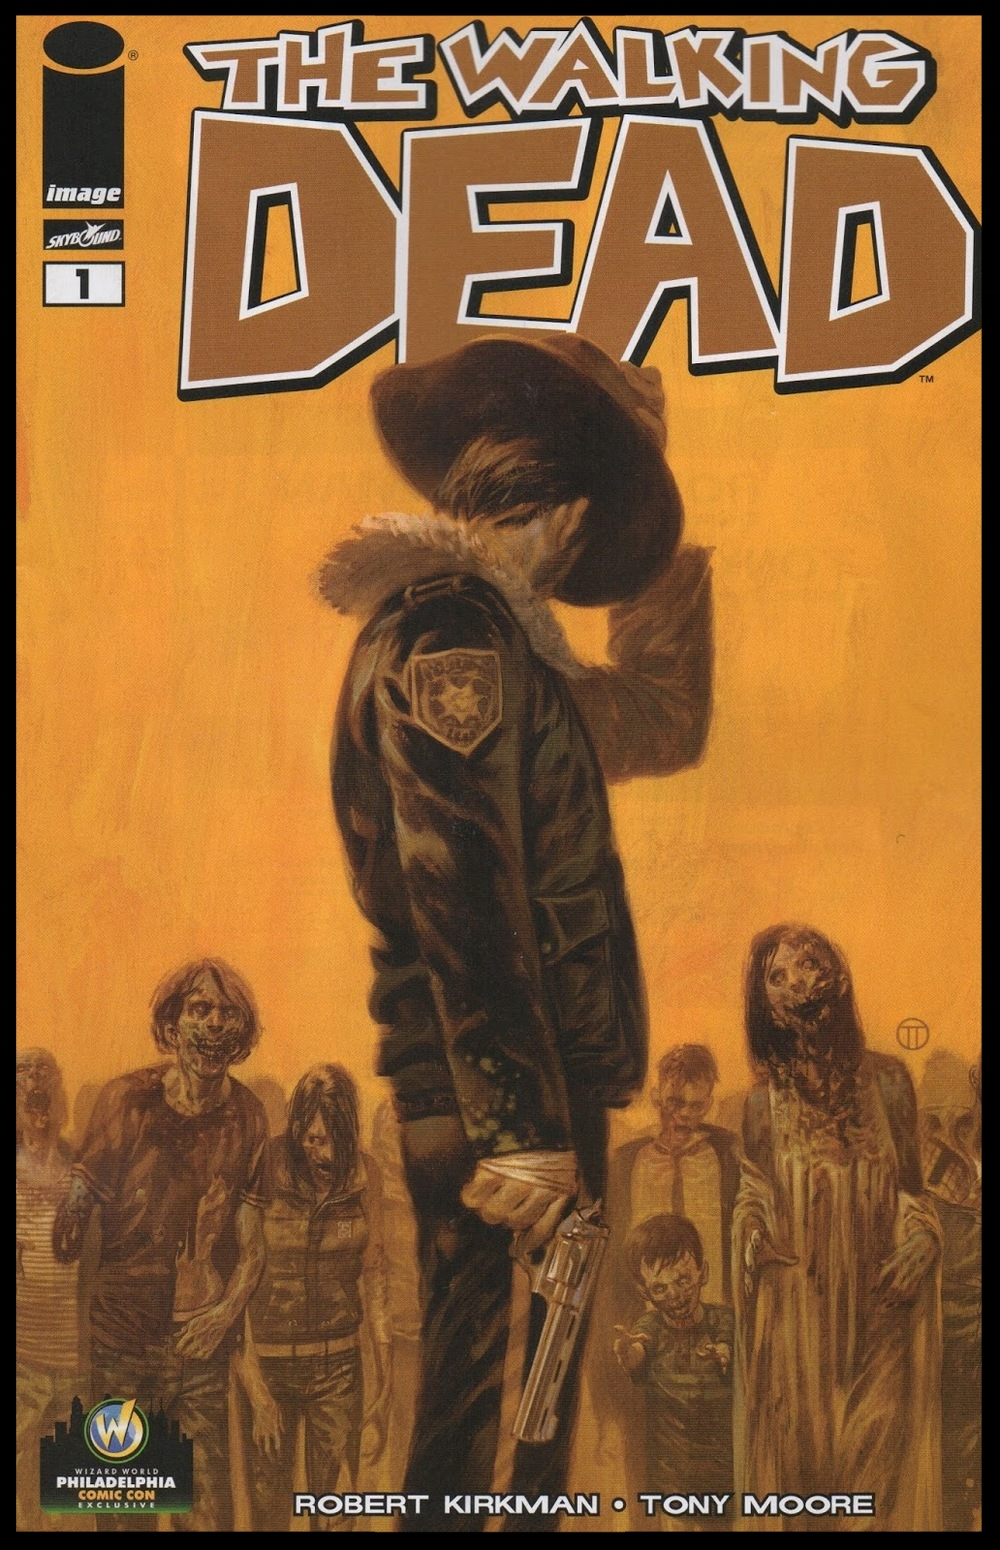 The walking dead philly exclusive.jpg